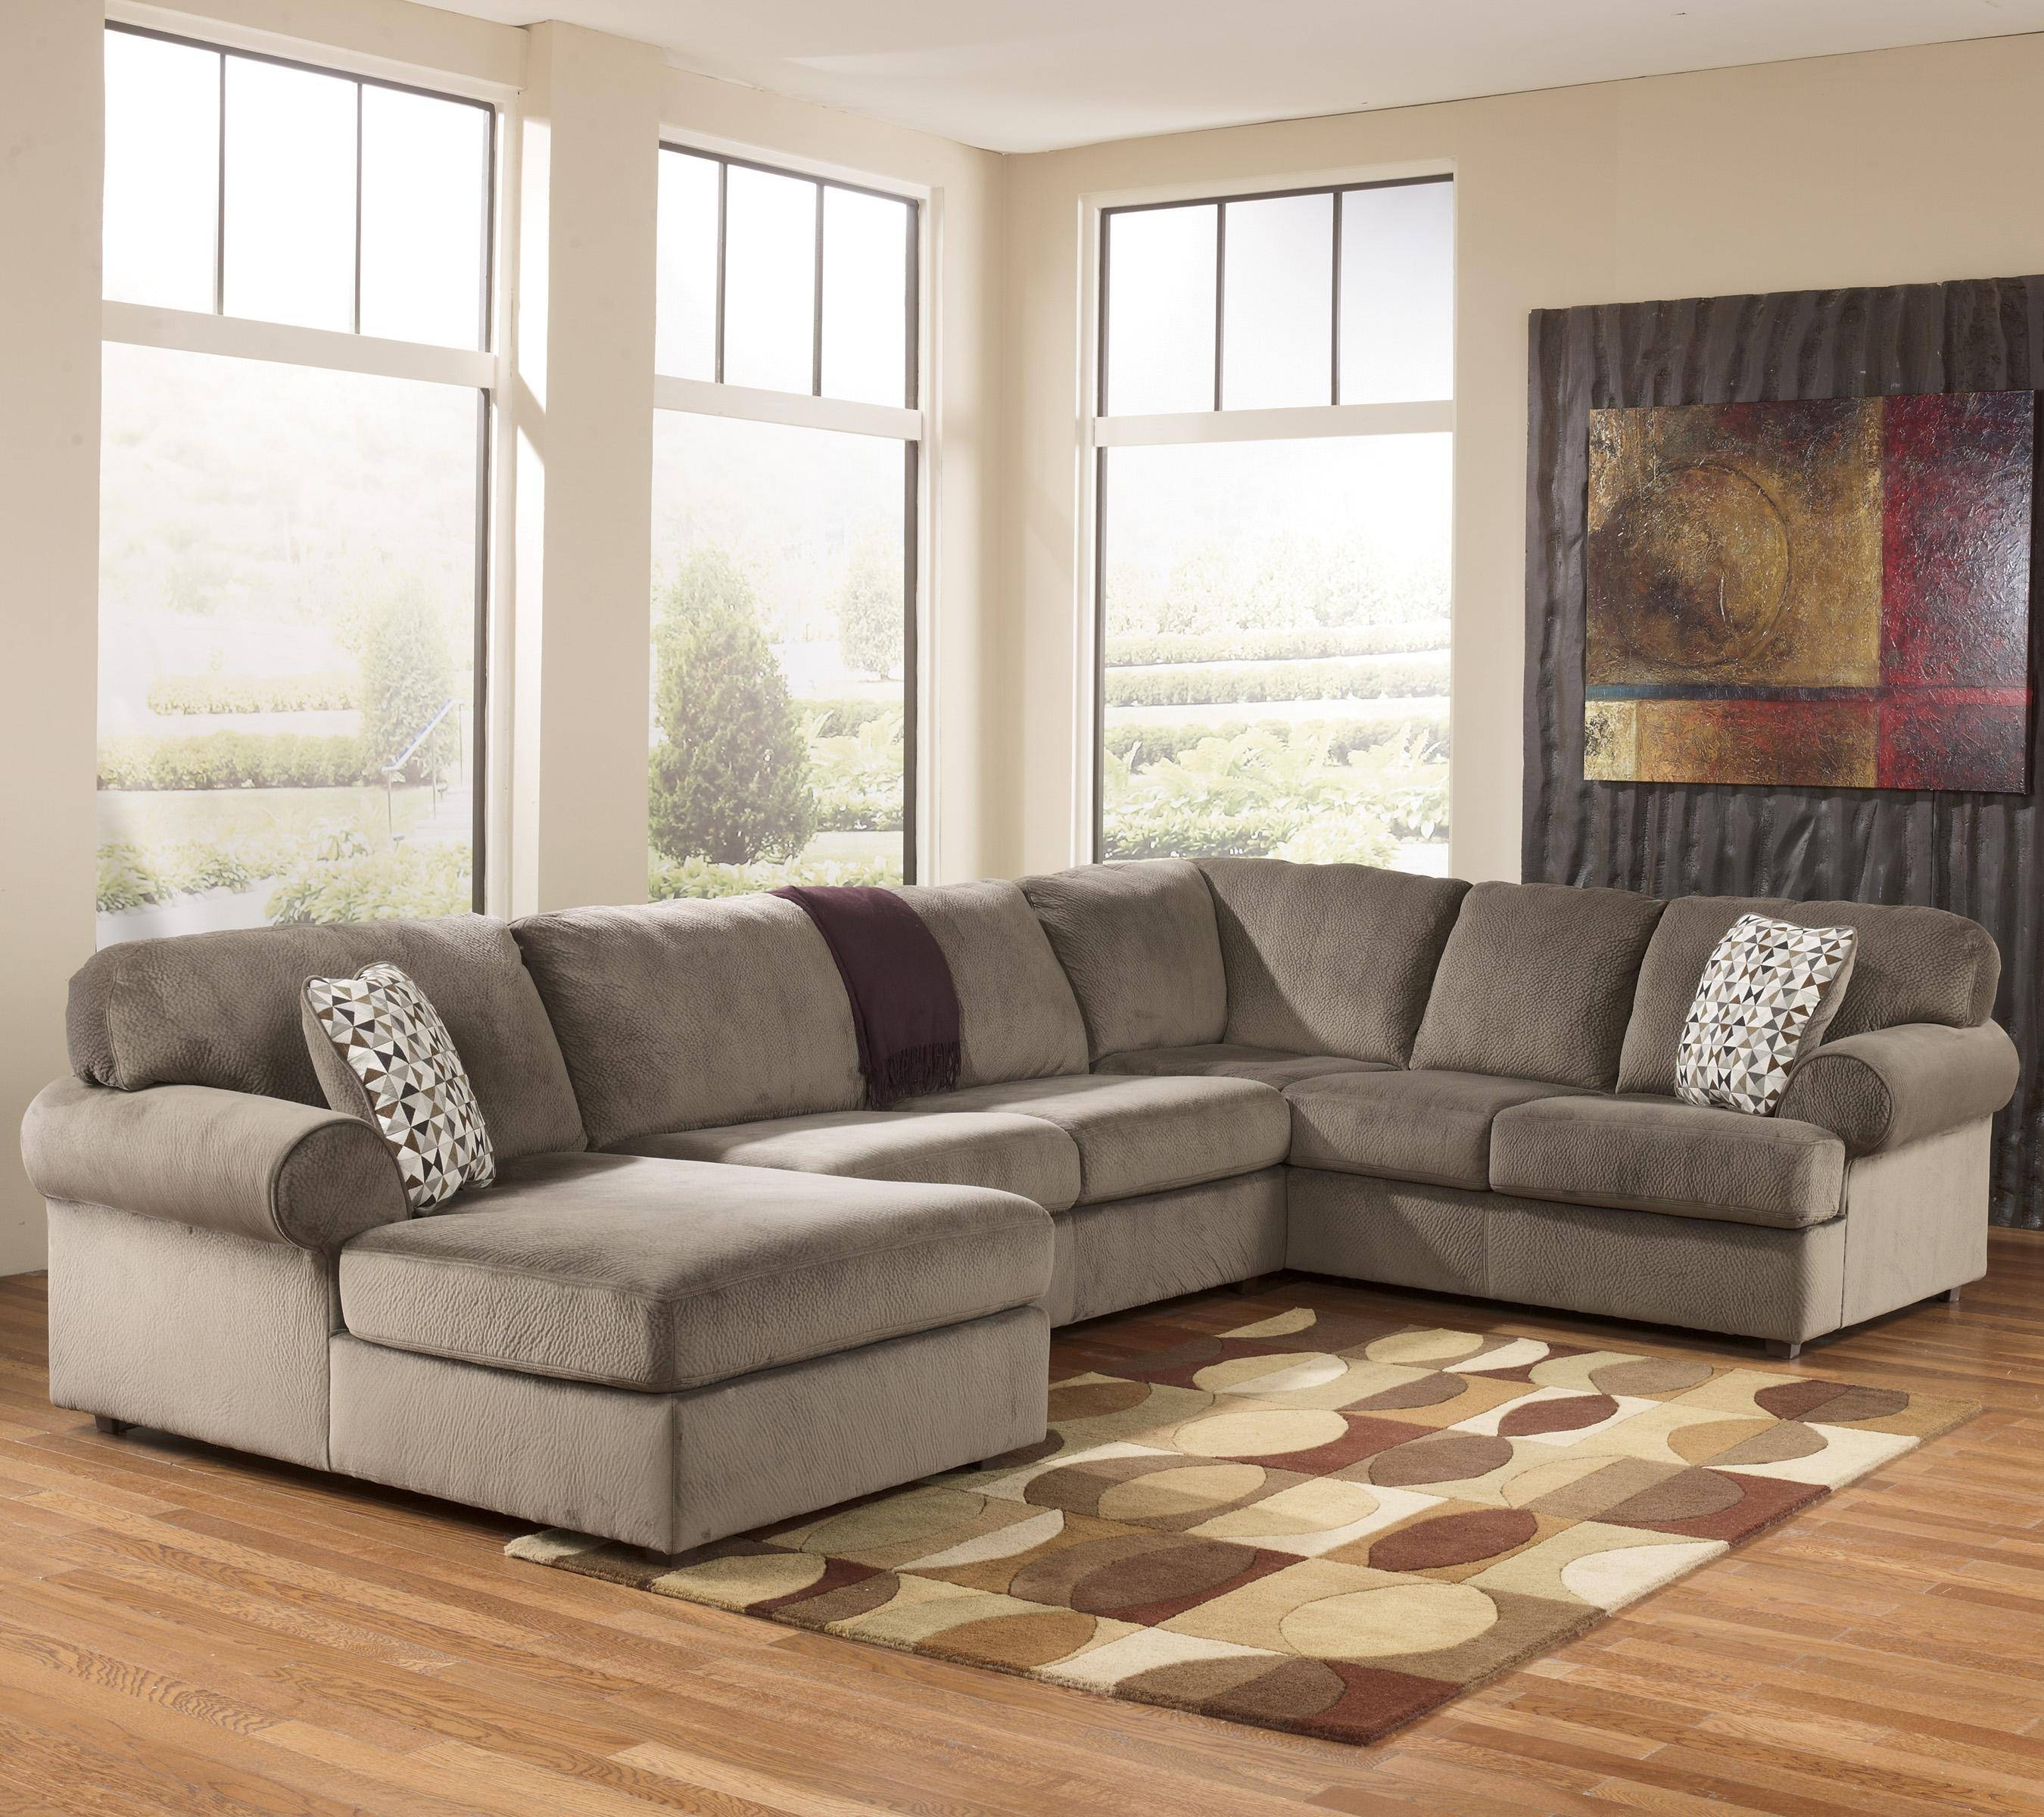 height belcastel in piece sofas products right threshold width item fabric with sectional mn trim chaise gray ashley